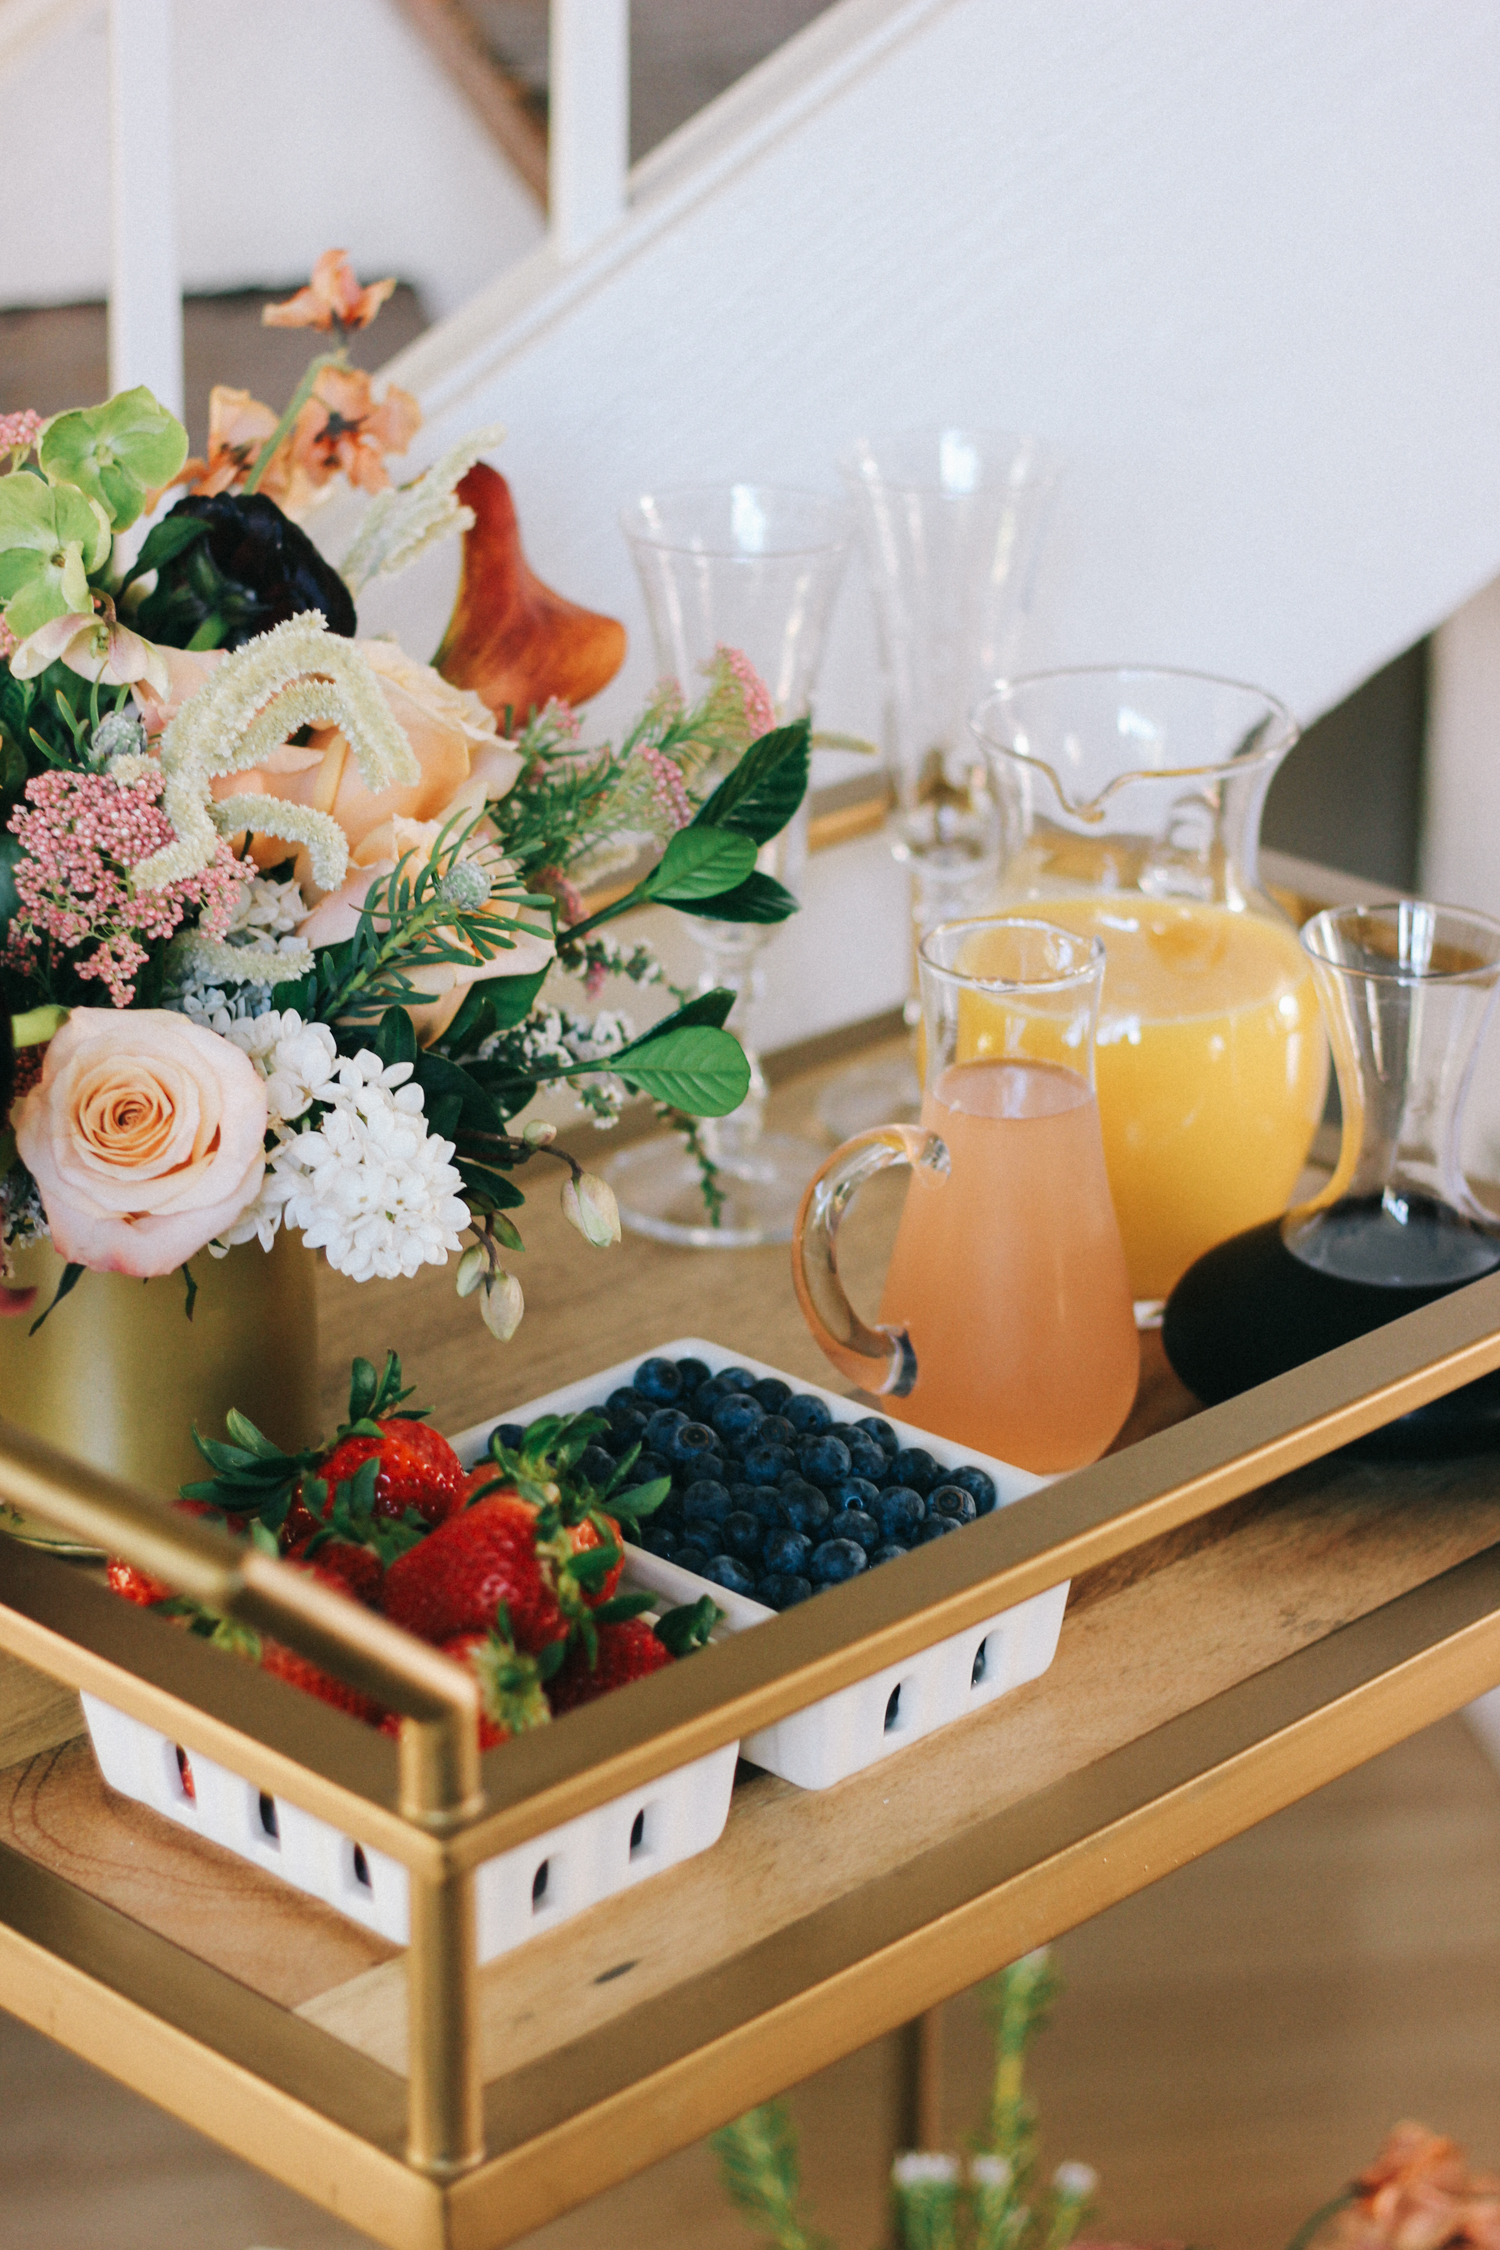 Mimosa bar for an Easter or Spring brunch | A Fabulous Fete